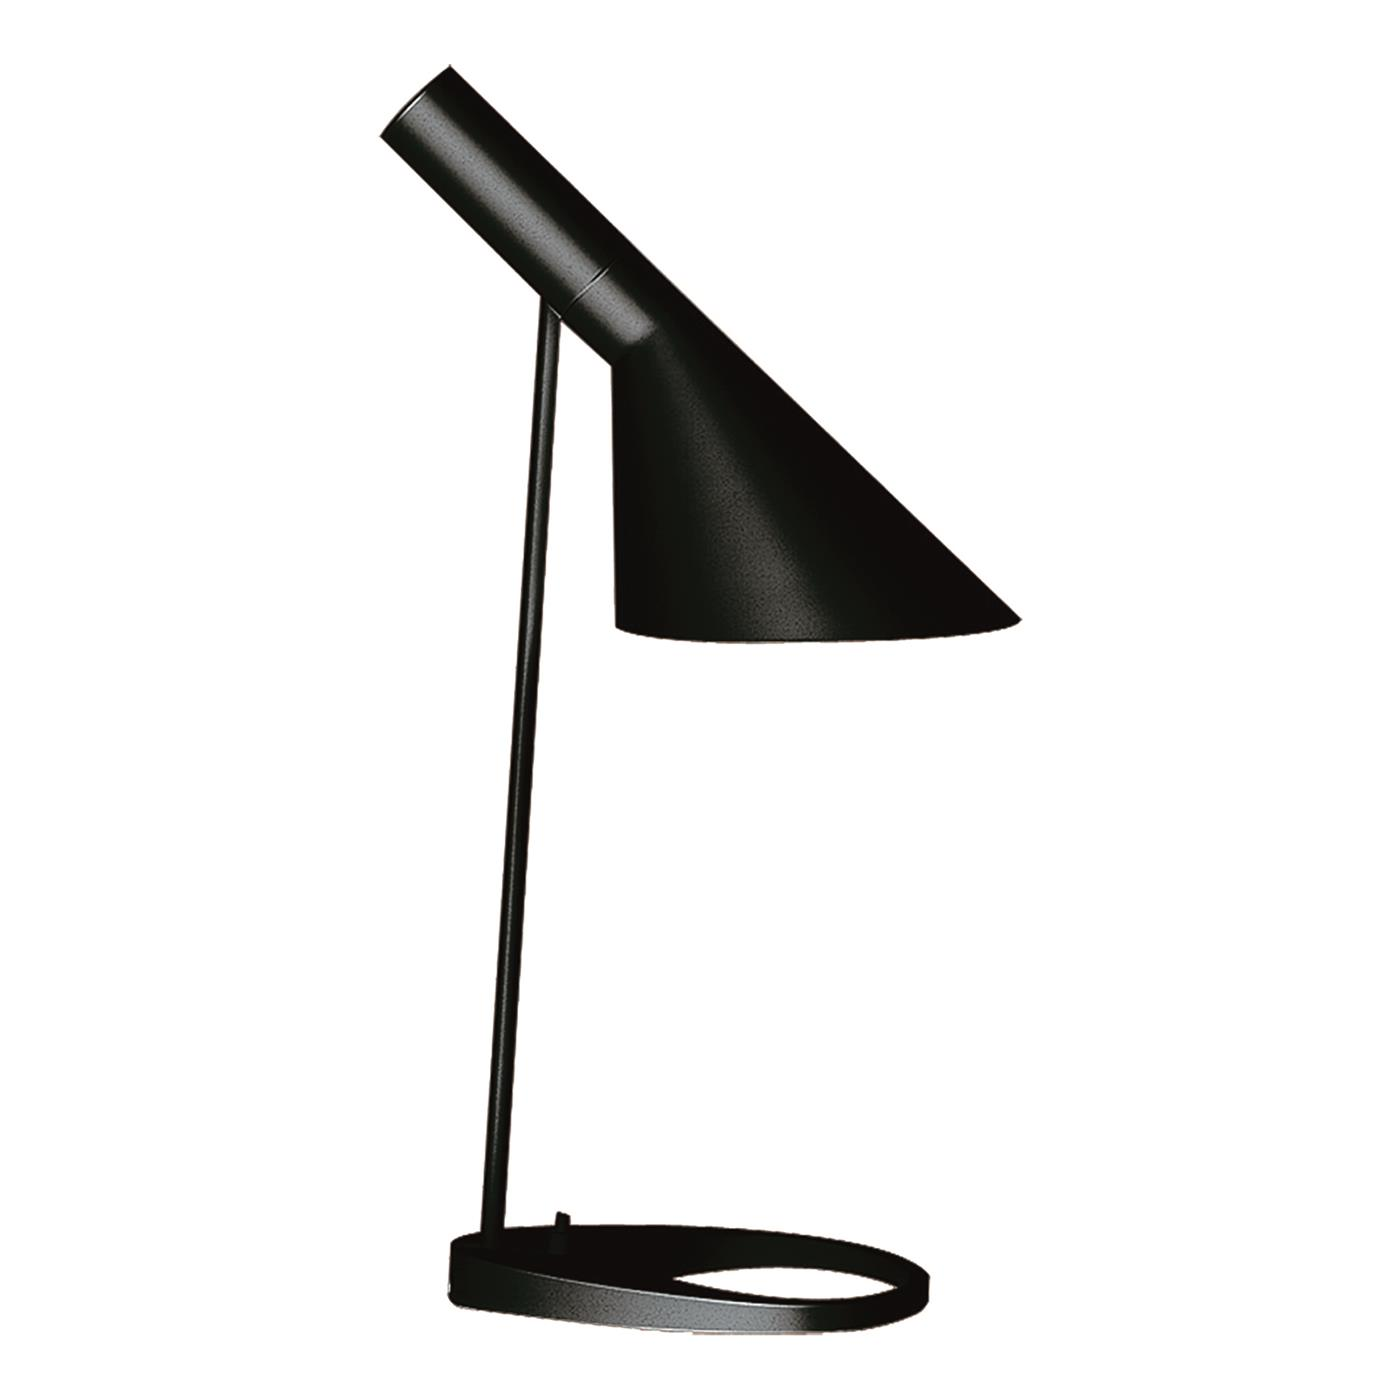 arne jacobsen lampe best av inspirasjon til hjemme design. Black Bedroom Furniture Sets. Home Design Ideas